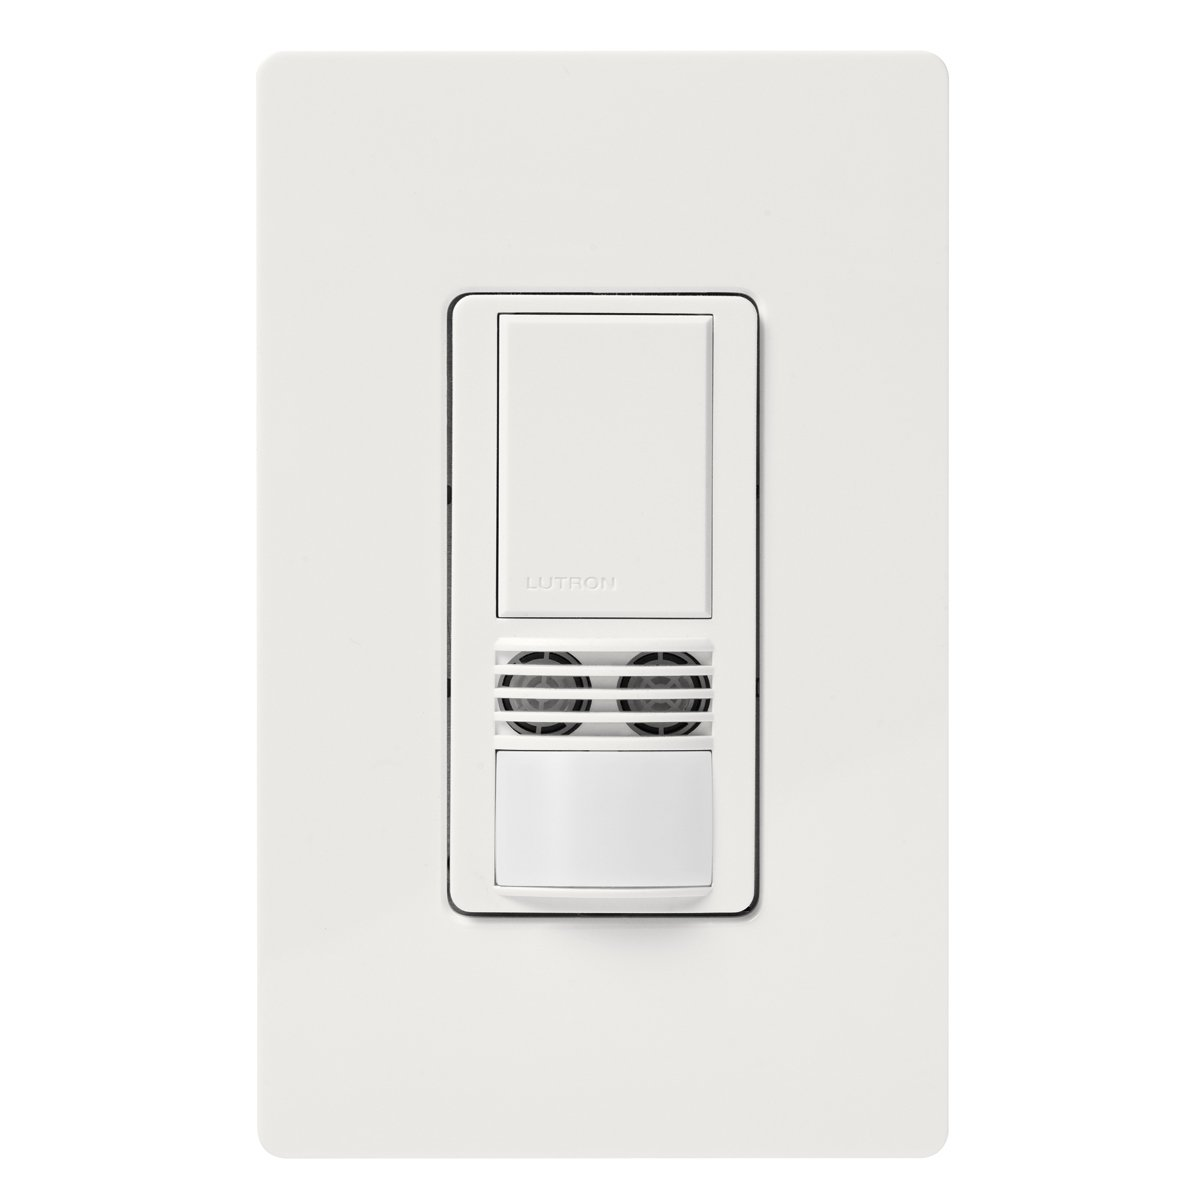 Lutron MS-A102-WH Maestro Dual Tech Occupancy Sensor Switch, no neutral required, 6 Amp Single-Pole, White